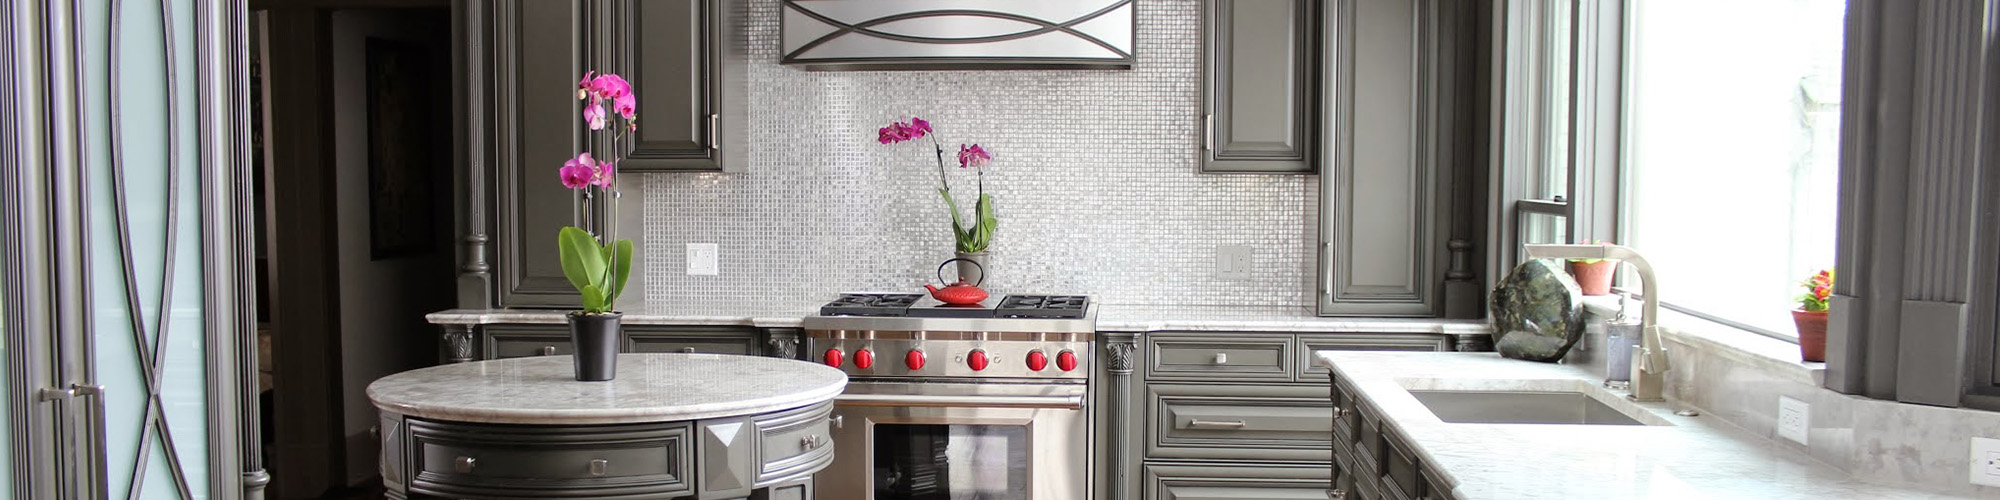 architectural justice kitchen remodels